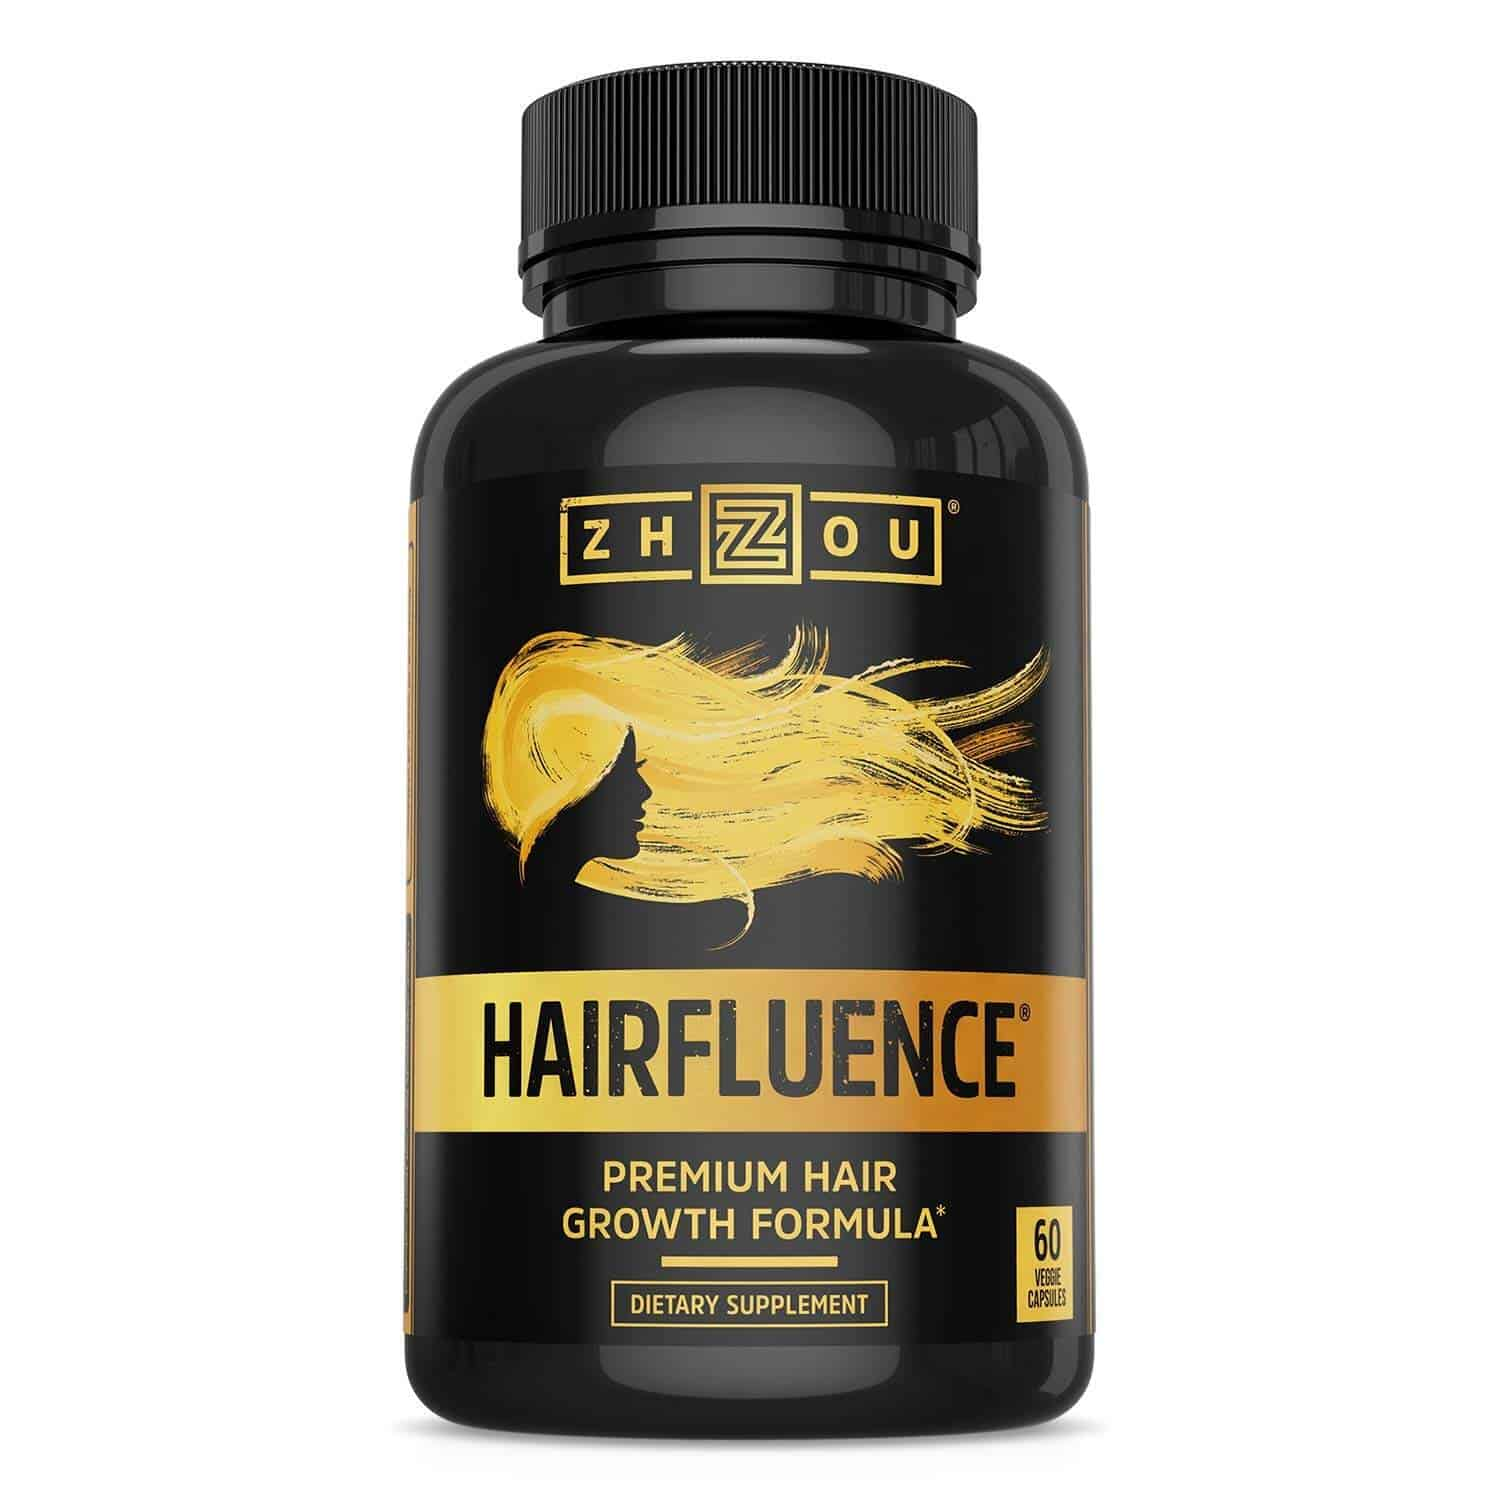 hairfluence-bottle